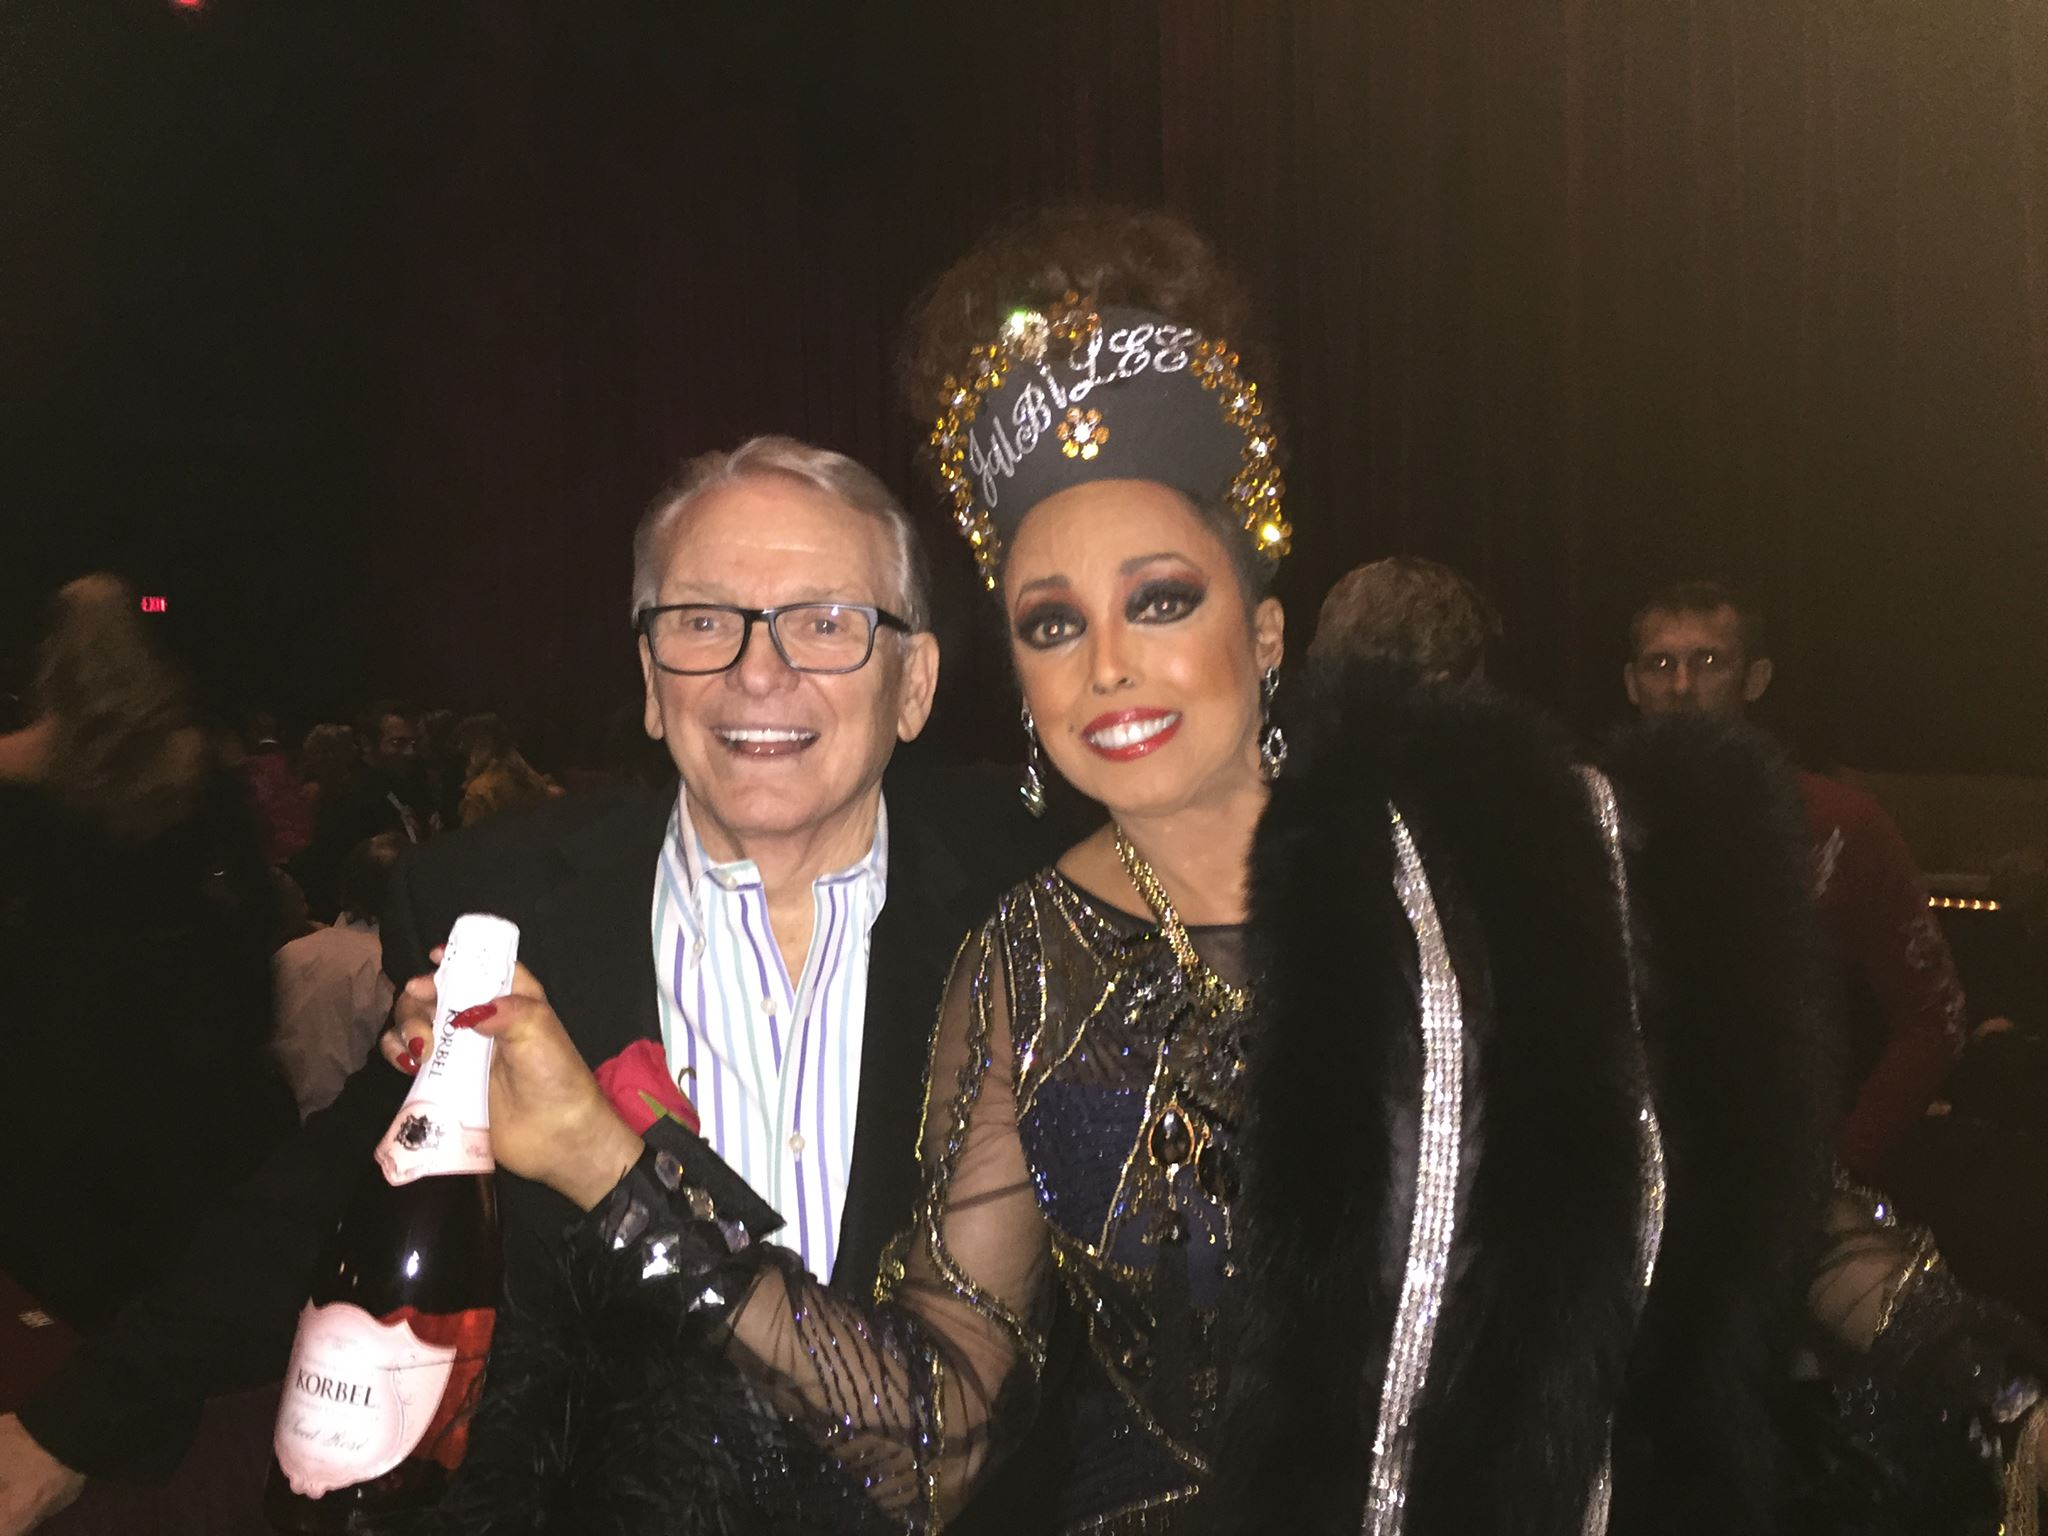 Jakki Ford Posing with Bob Mackie